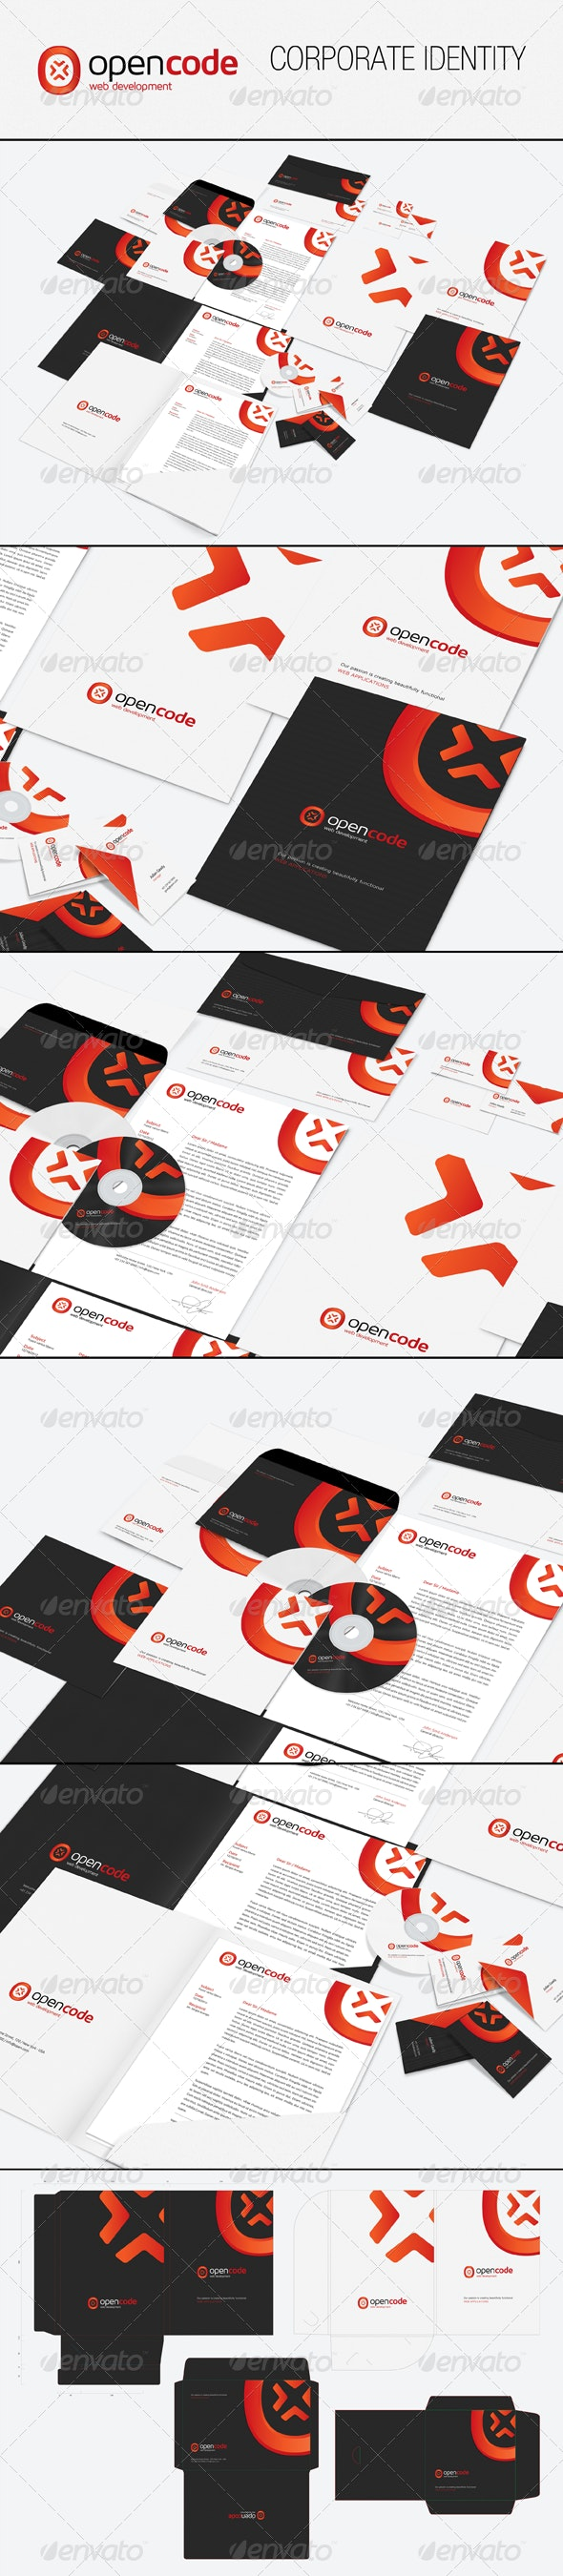 Open Code Corporate Identity - Stationery Print Templates